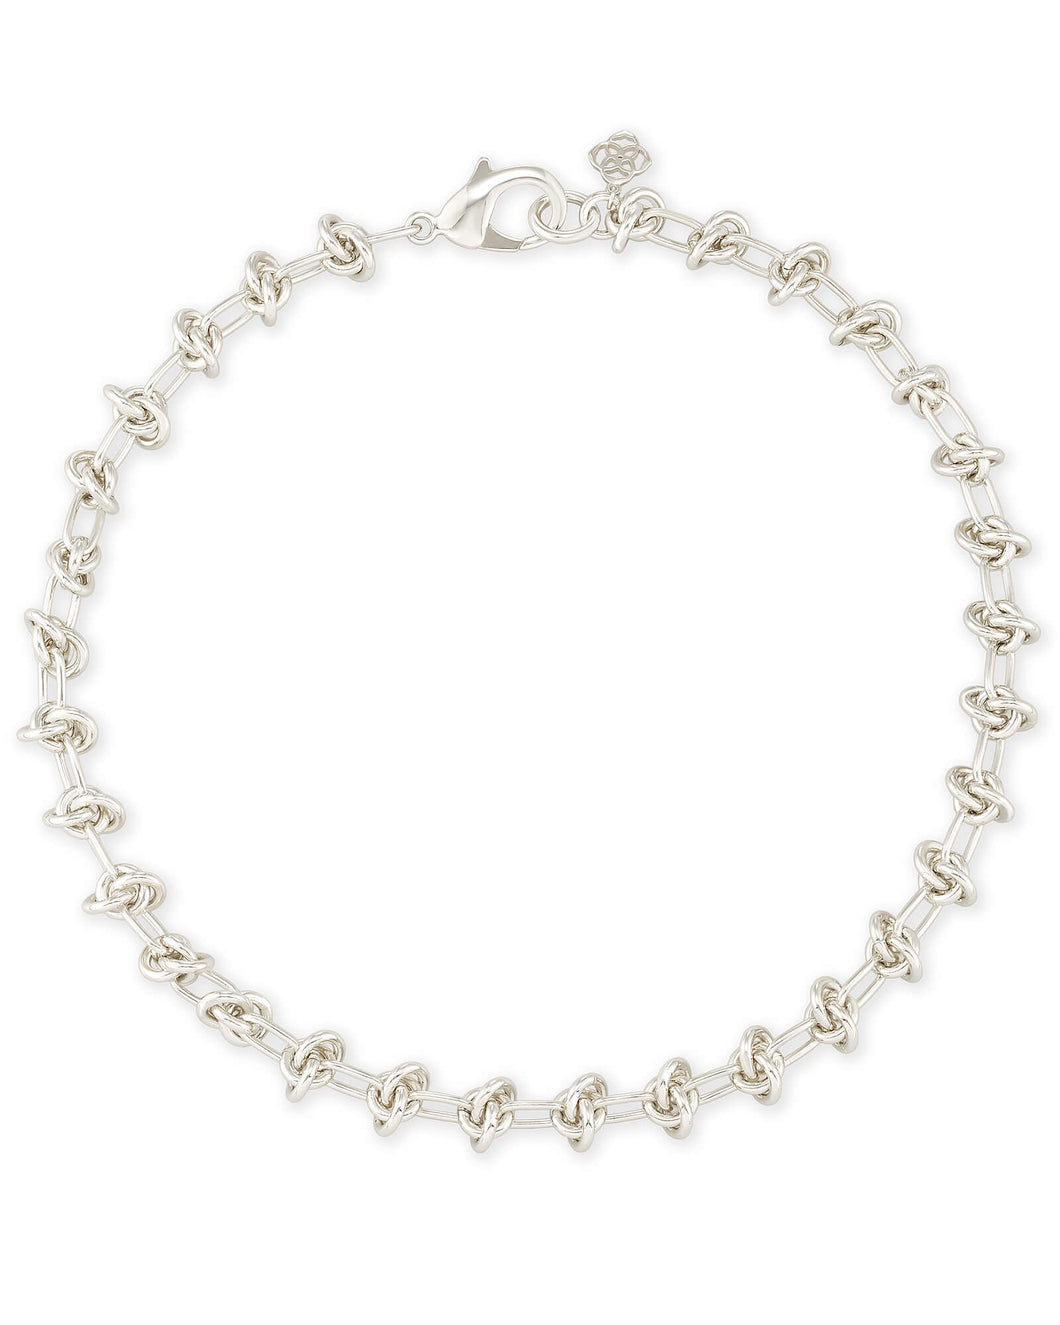 Presleigh Choker Necklace in Bright Silver